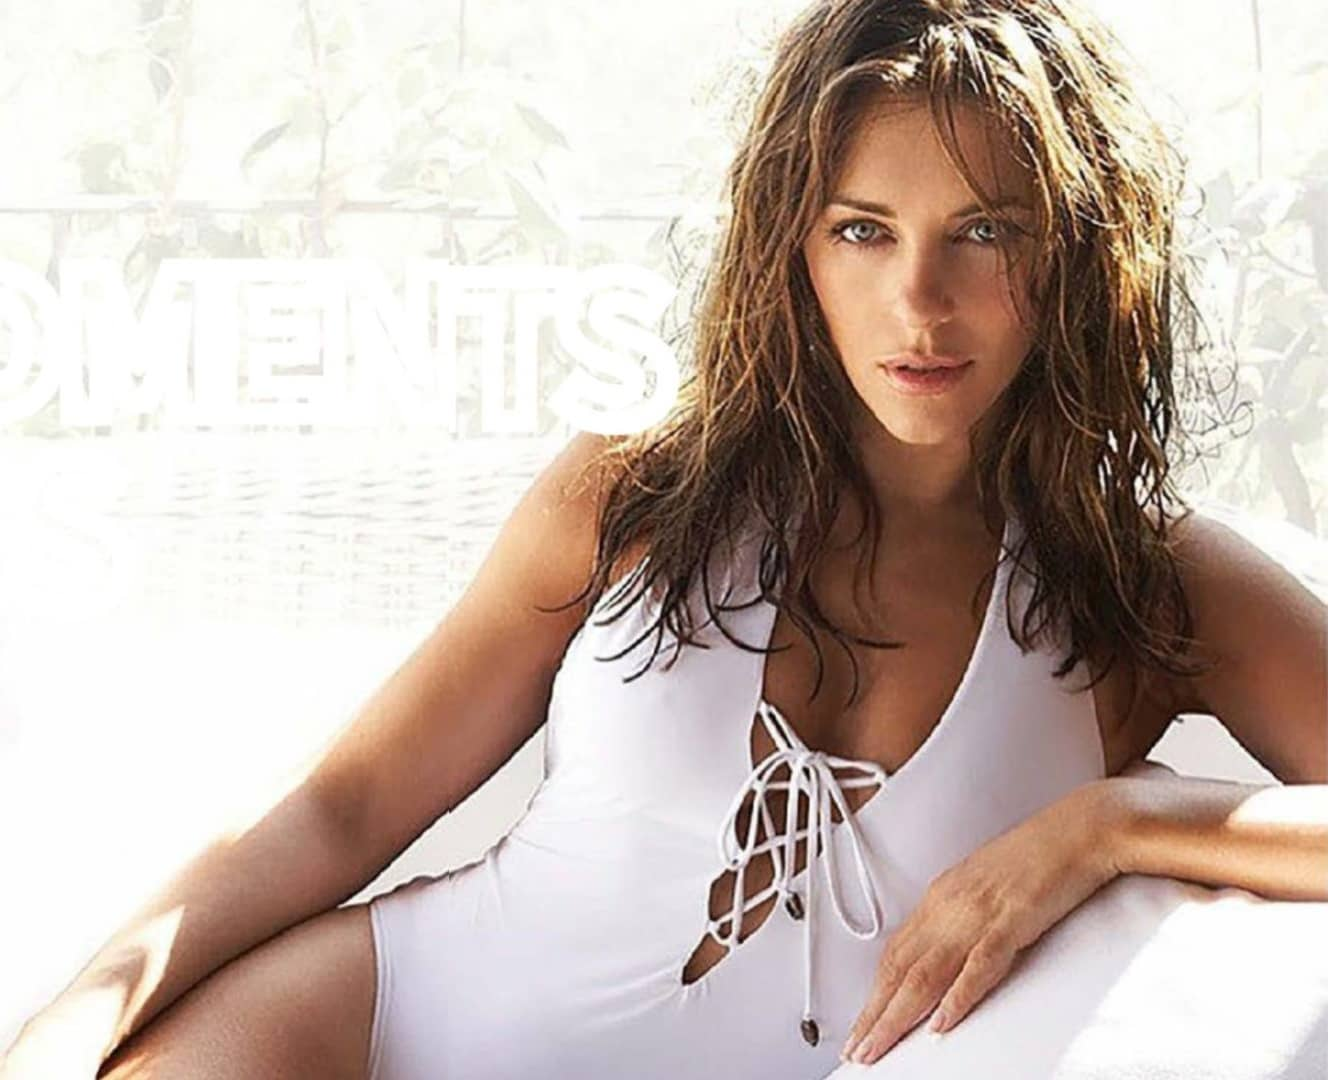 Liz Hurley's - 10 COMMANDMENT OF FITNESS